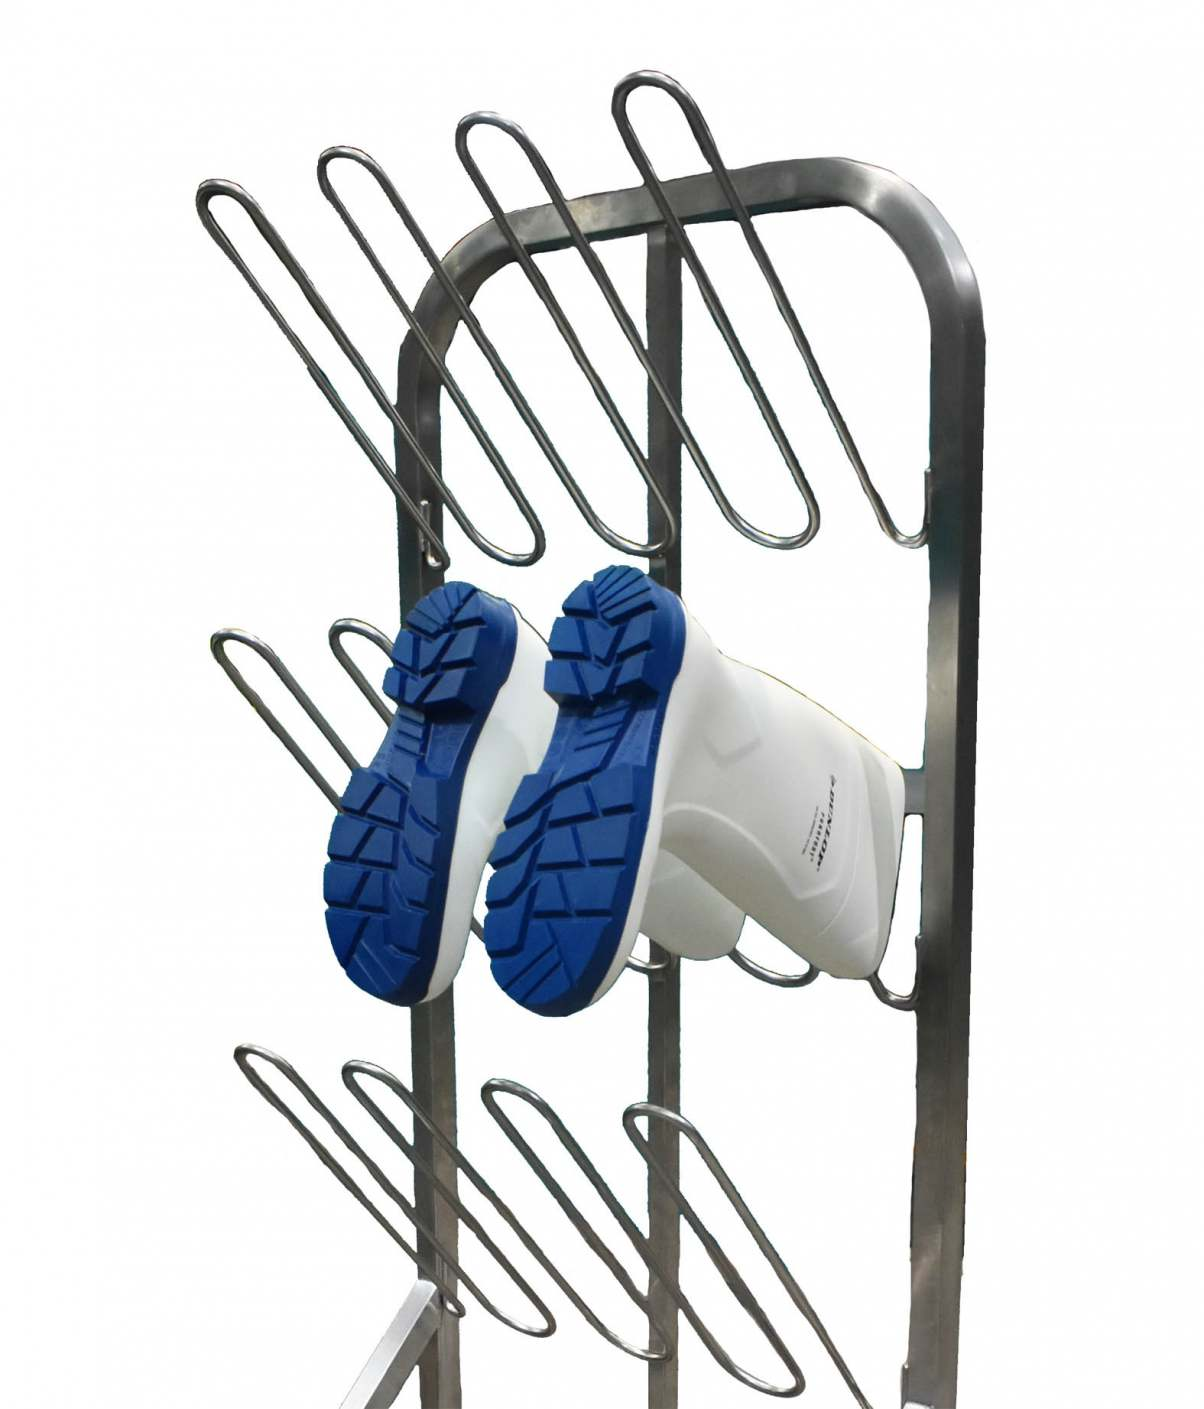 Our new hygienic boot rack